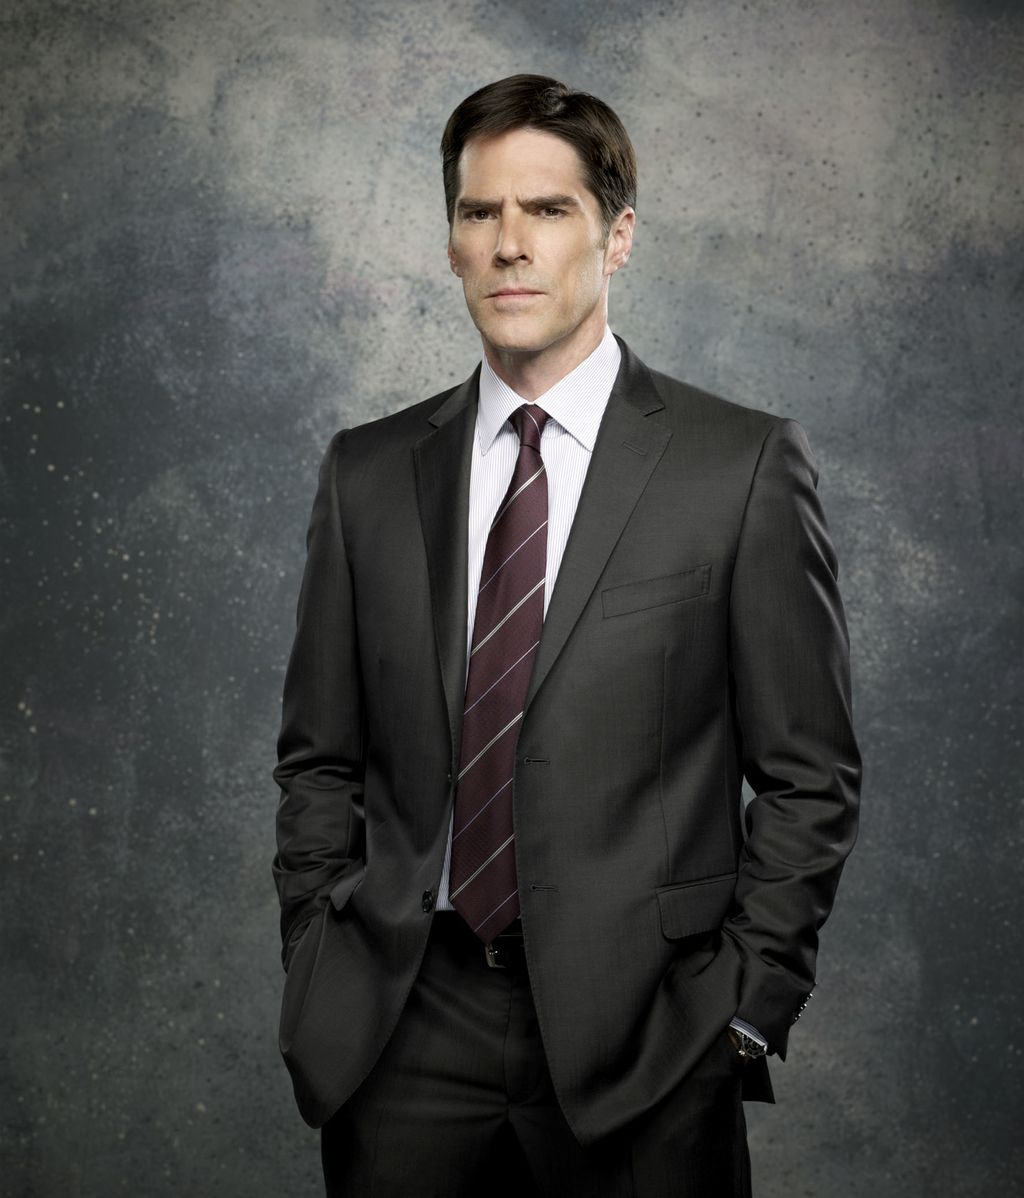 Aaron 'Hotch' Hotchner (interpretado por Thomas Gibson)